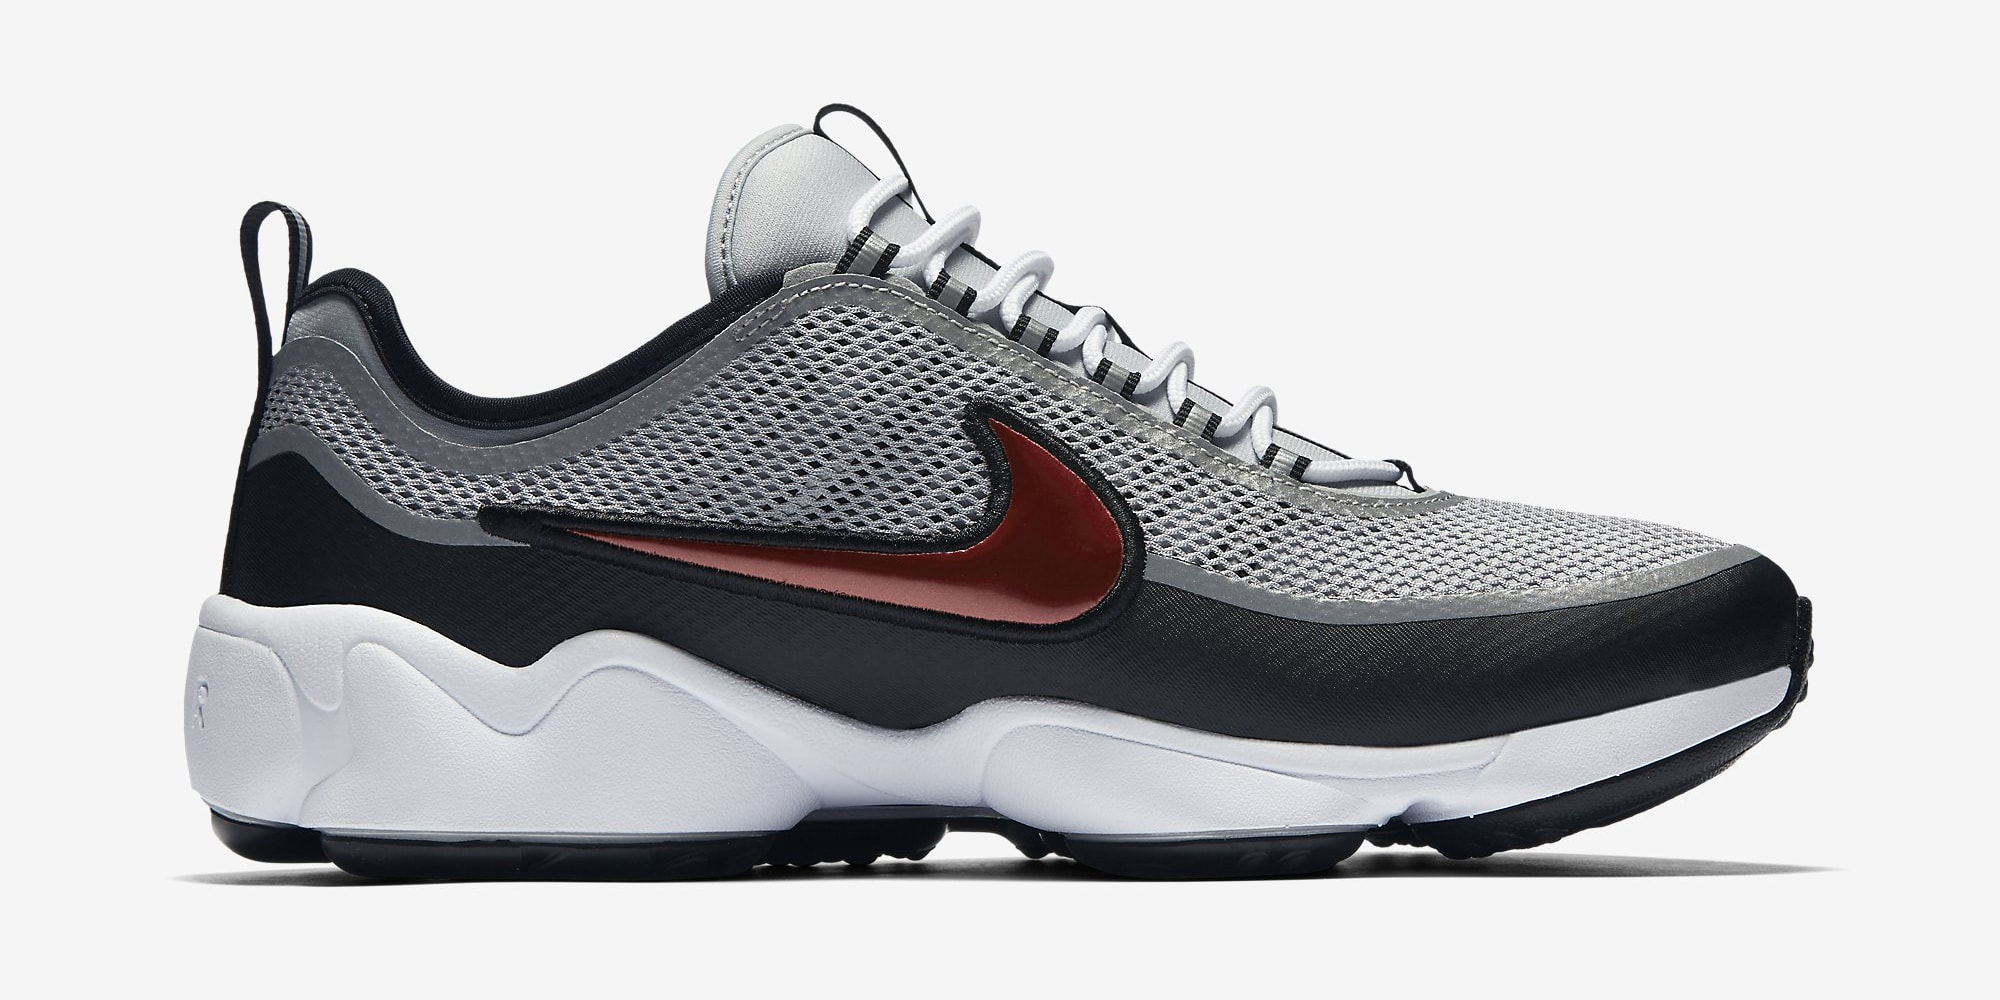 59436898792d Image via Nike Nike Air Zoom Spiridon Ultra OG 876267-001 Medial